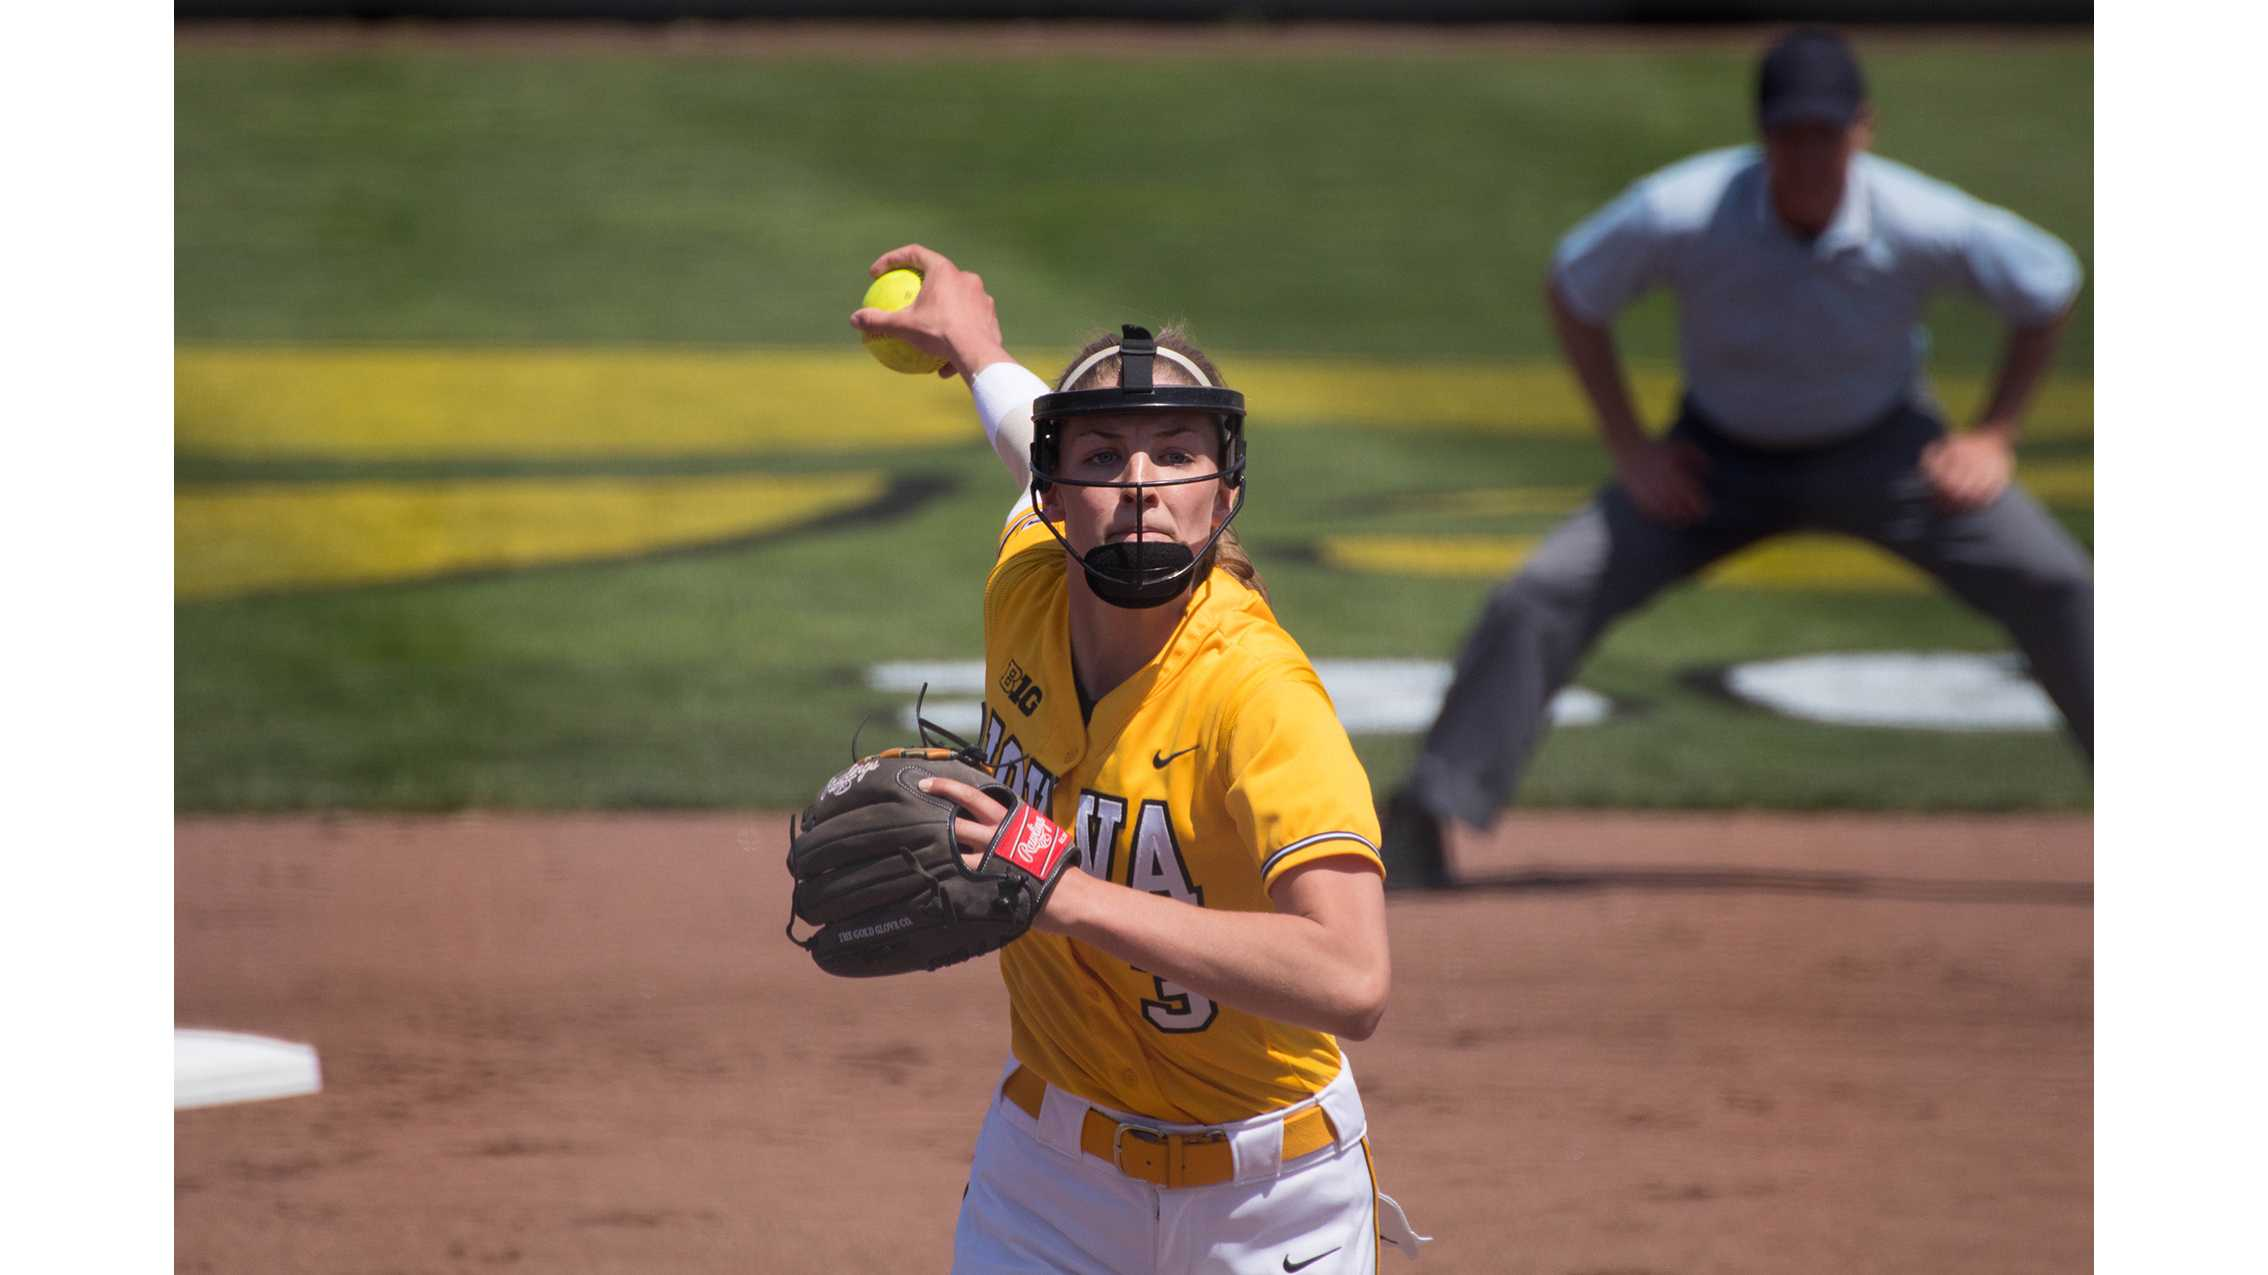 Allison Doocy pitches during Iowa's game against Purdue at Pearl Field on May 5, 2018. The Hawkeyes were defeated 9-0. (Megan Nagorzanski/The Daily Iowan)